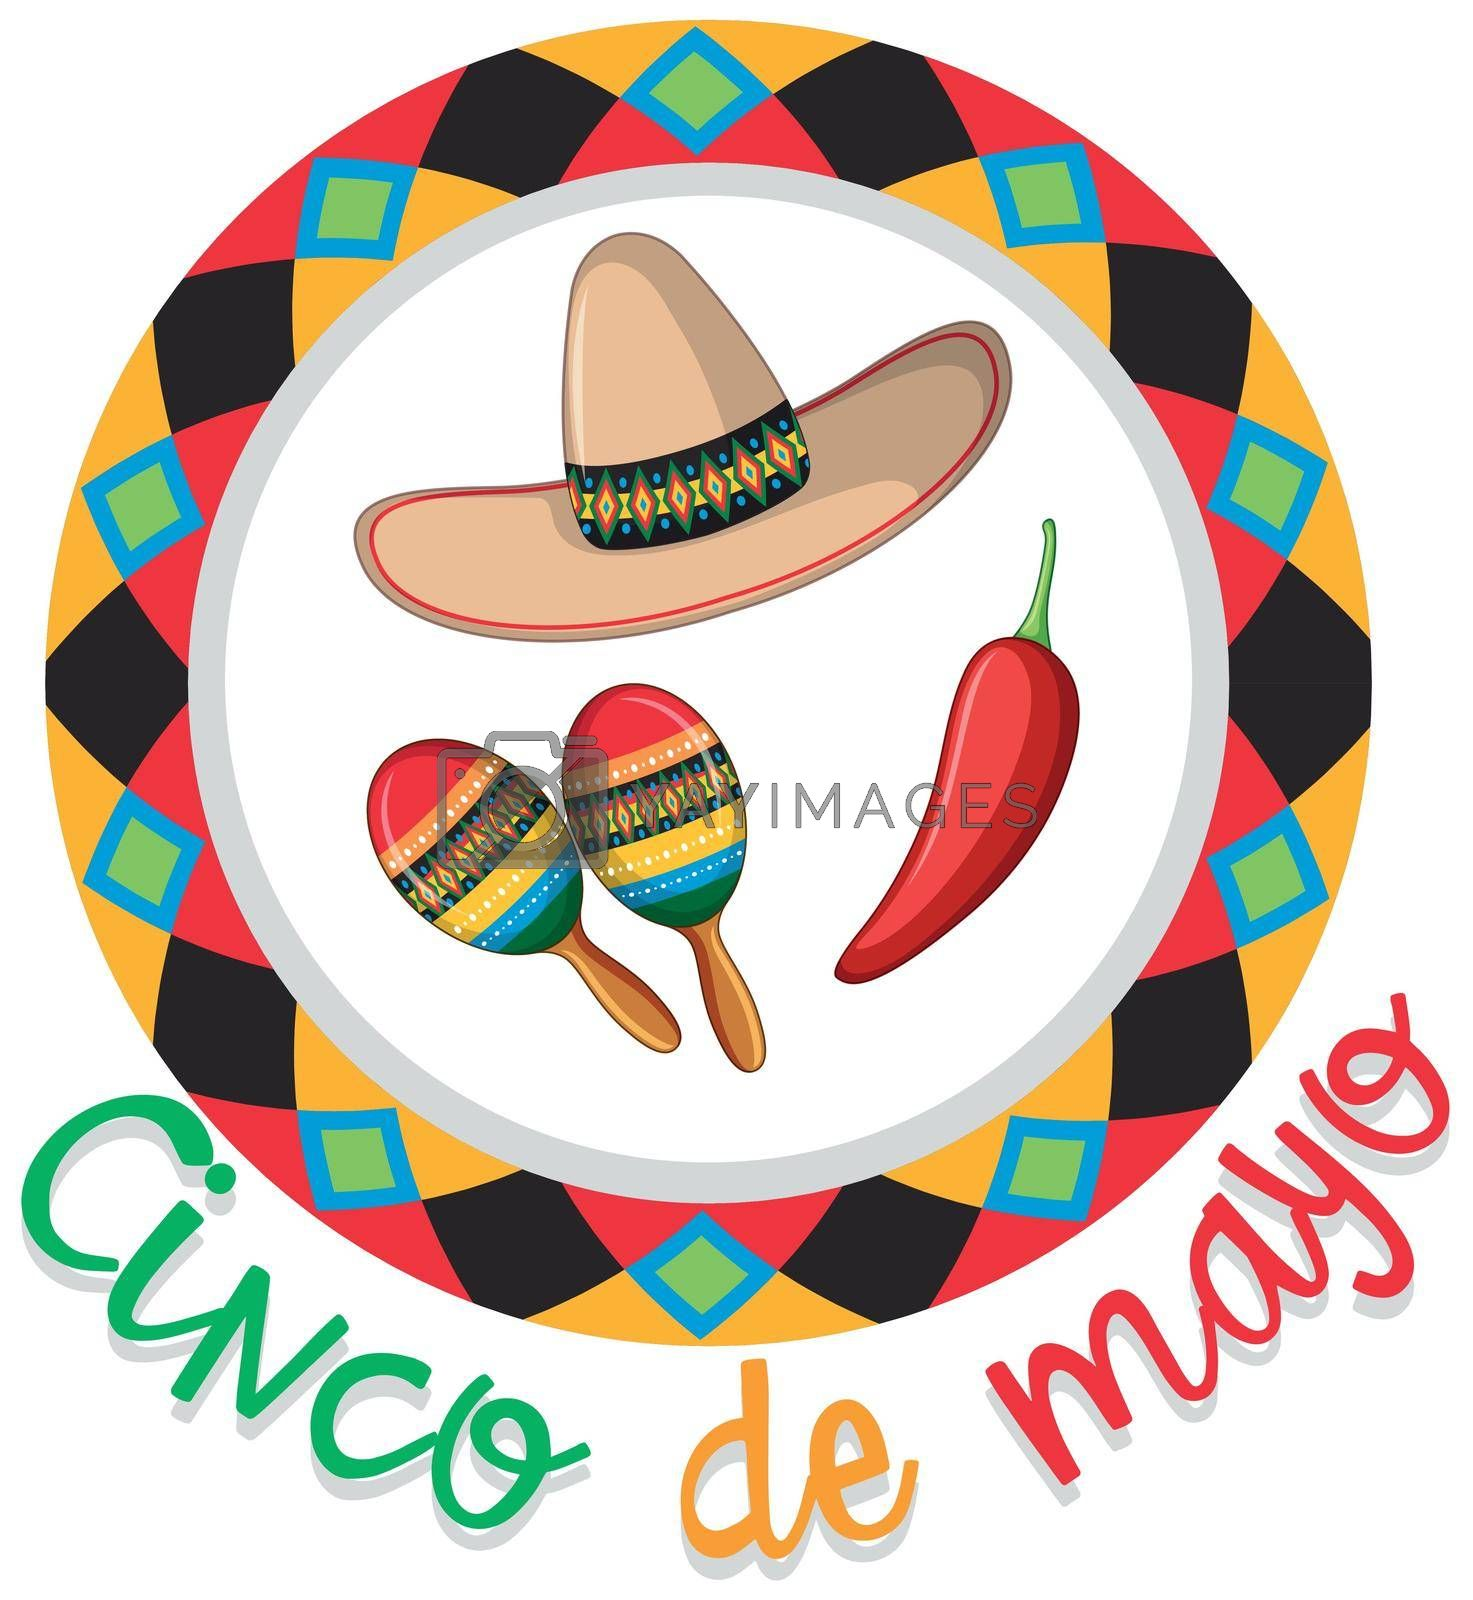 Cinco de mayo poster design with hat and maracas illustration